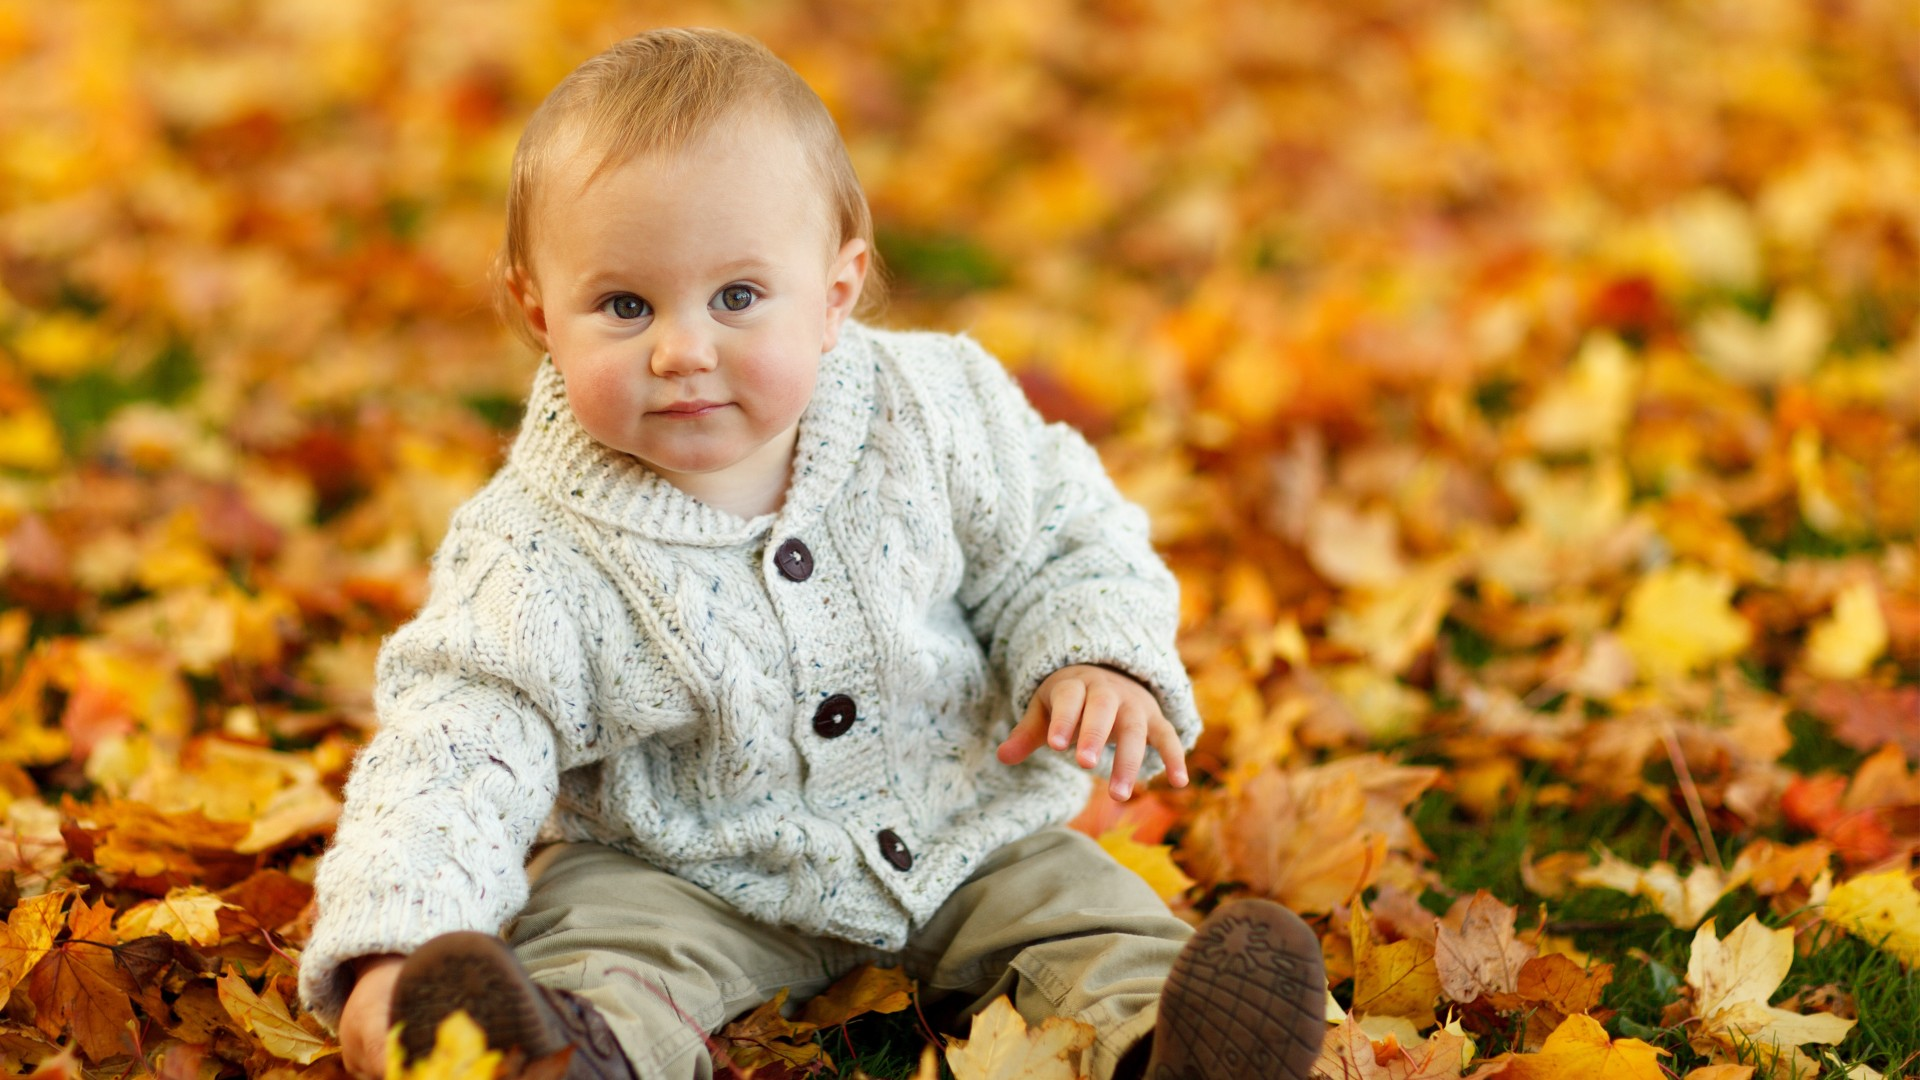 Cute Baby Boy Autumn Leaves Photo Wallpapers 1920x1080